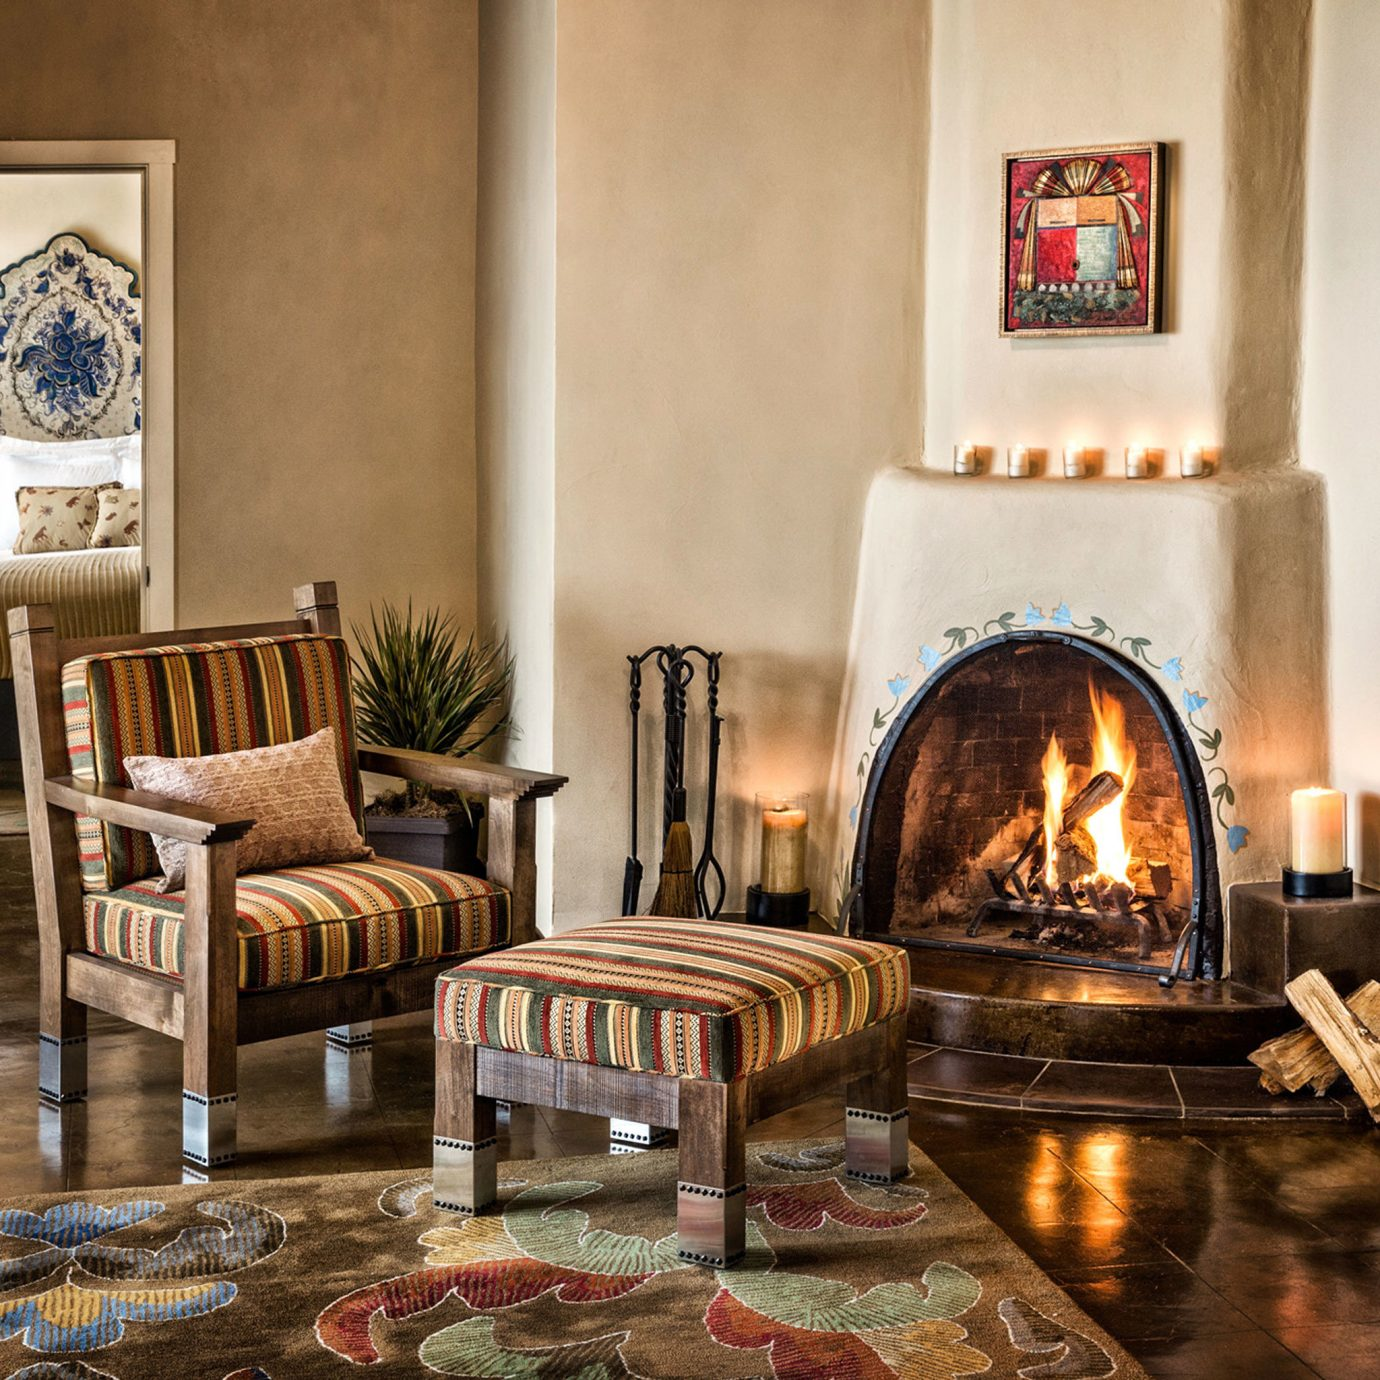 Fireplace Historic Hotels Lounge Luxury home living room hearth cottage